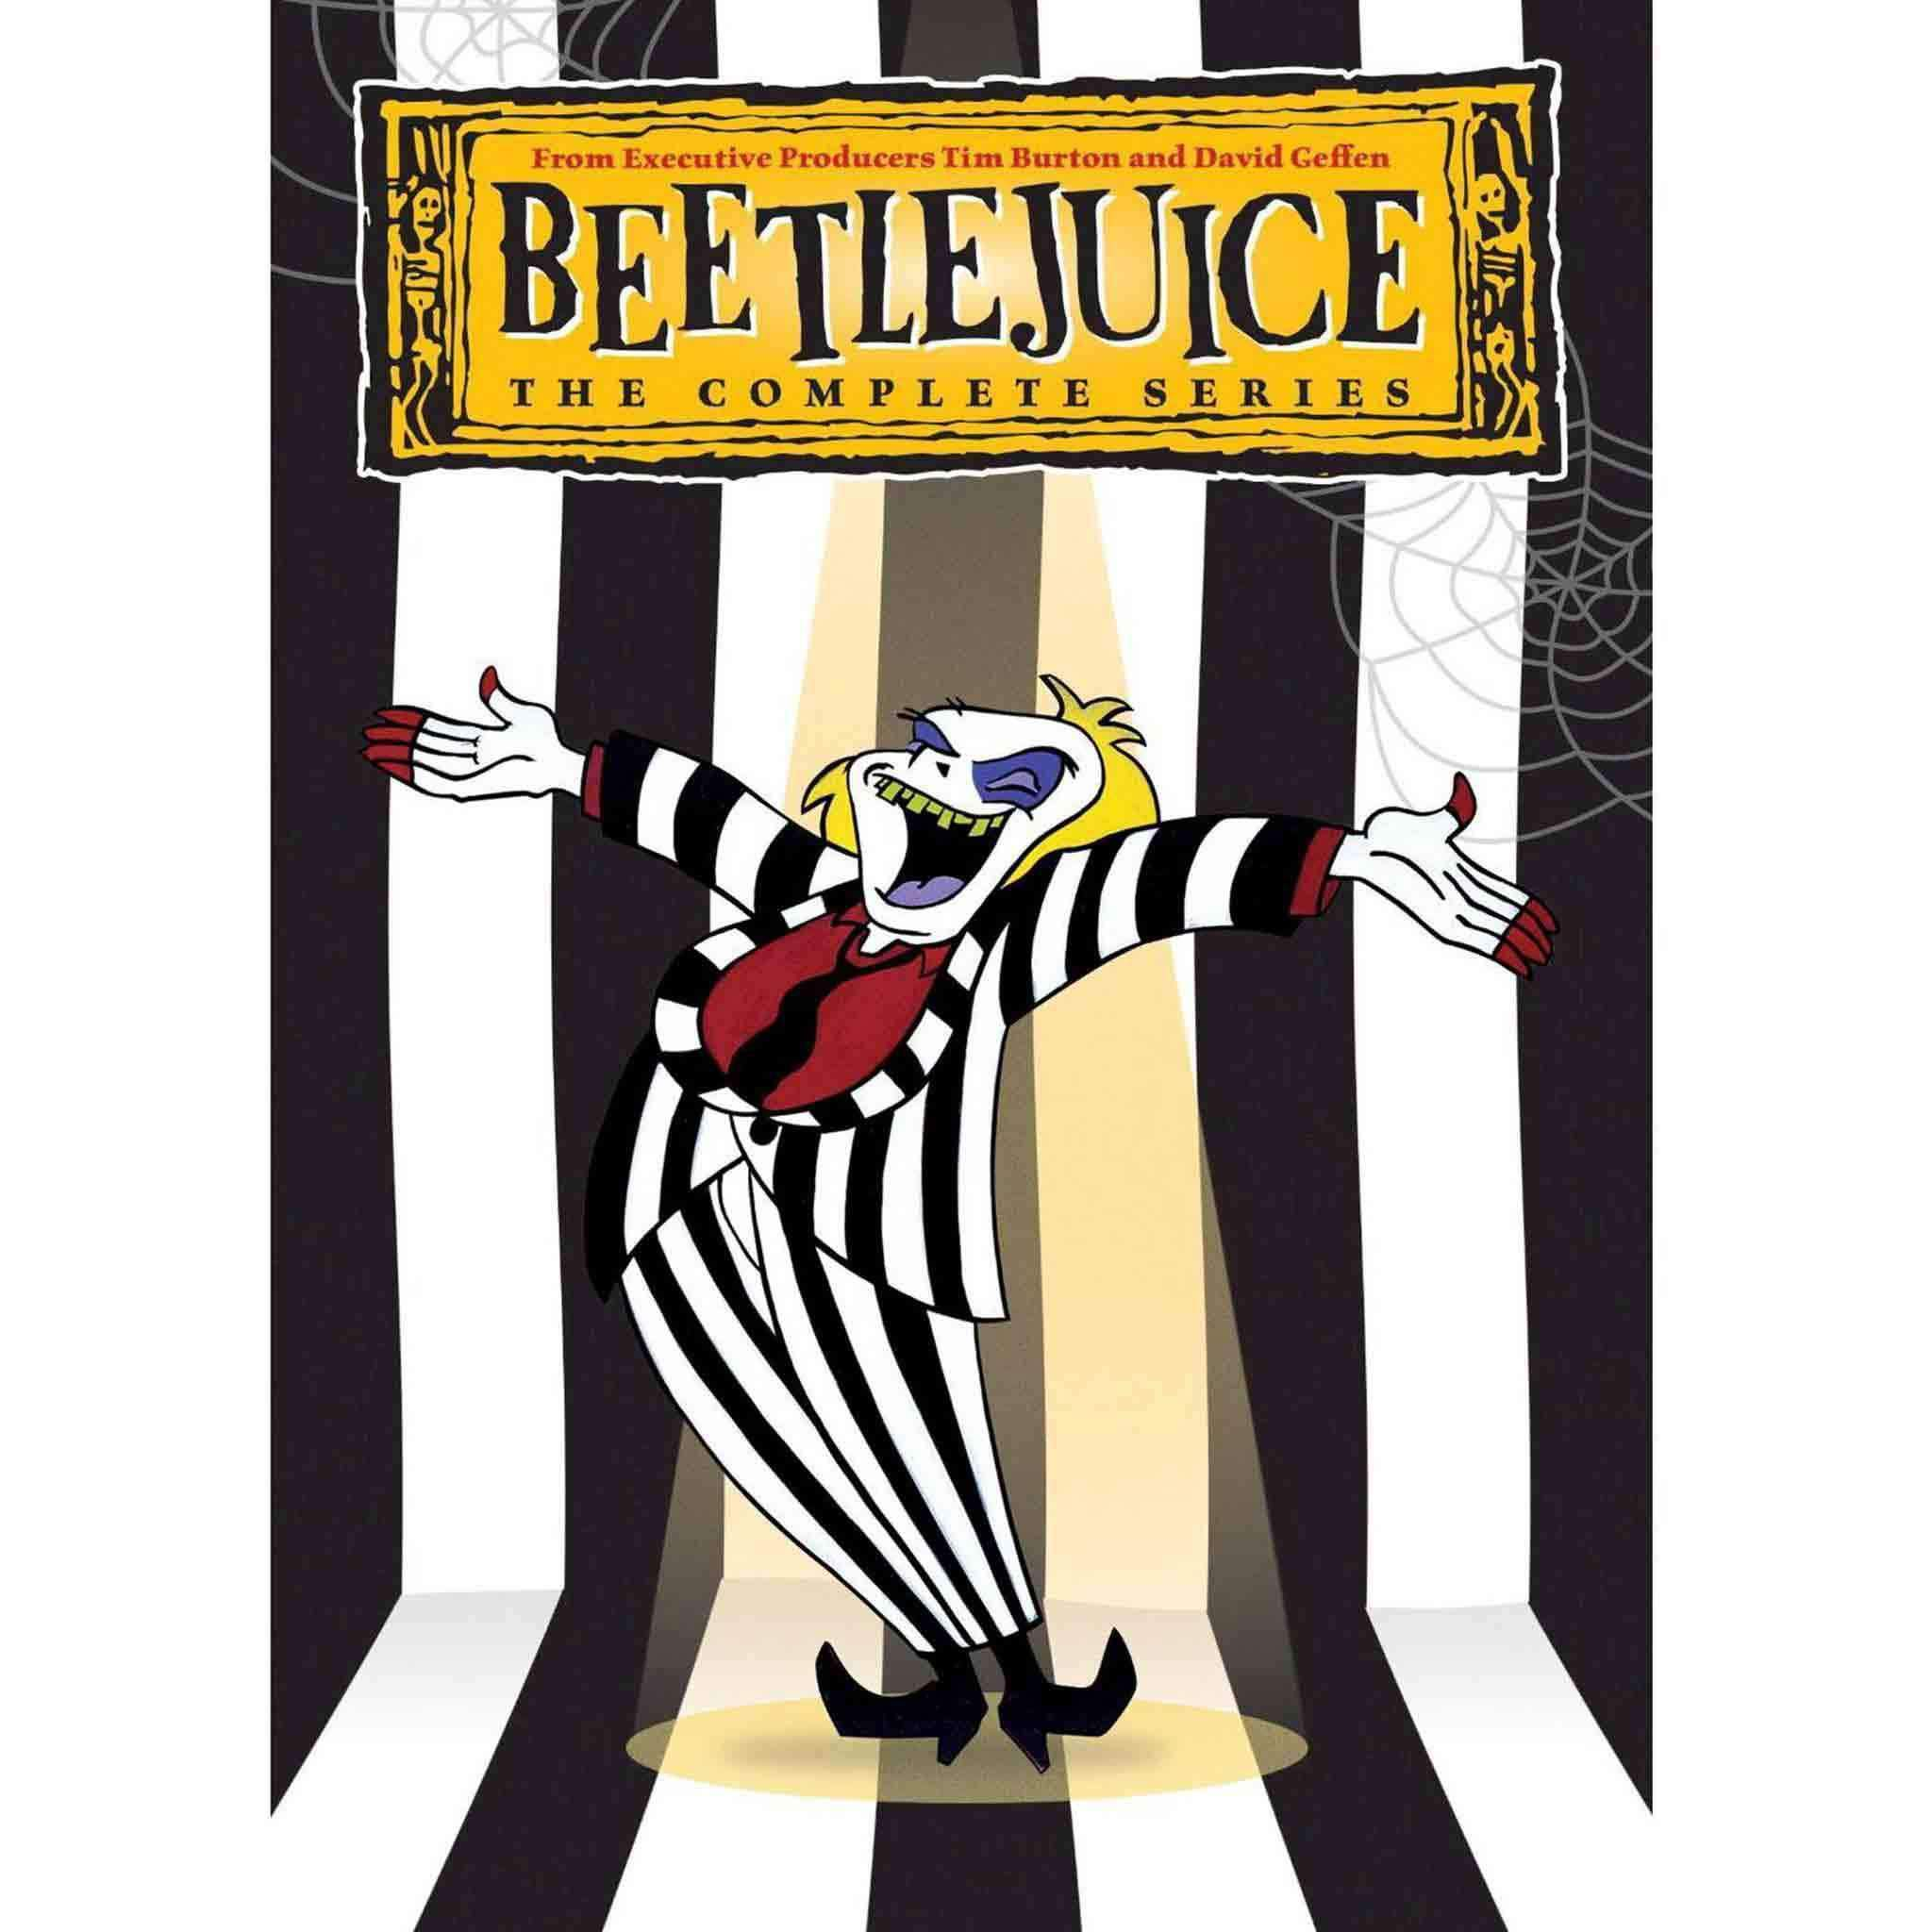 Beetlejuice DVD Series Complete Box Set Shout! Factory DVDs & Blu-ray Discs > DVDs > Box Sets